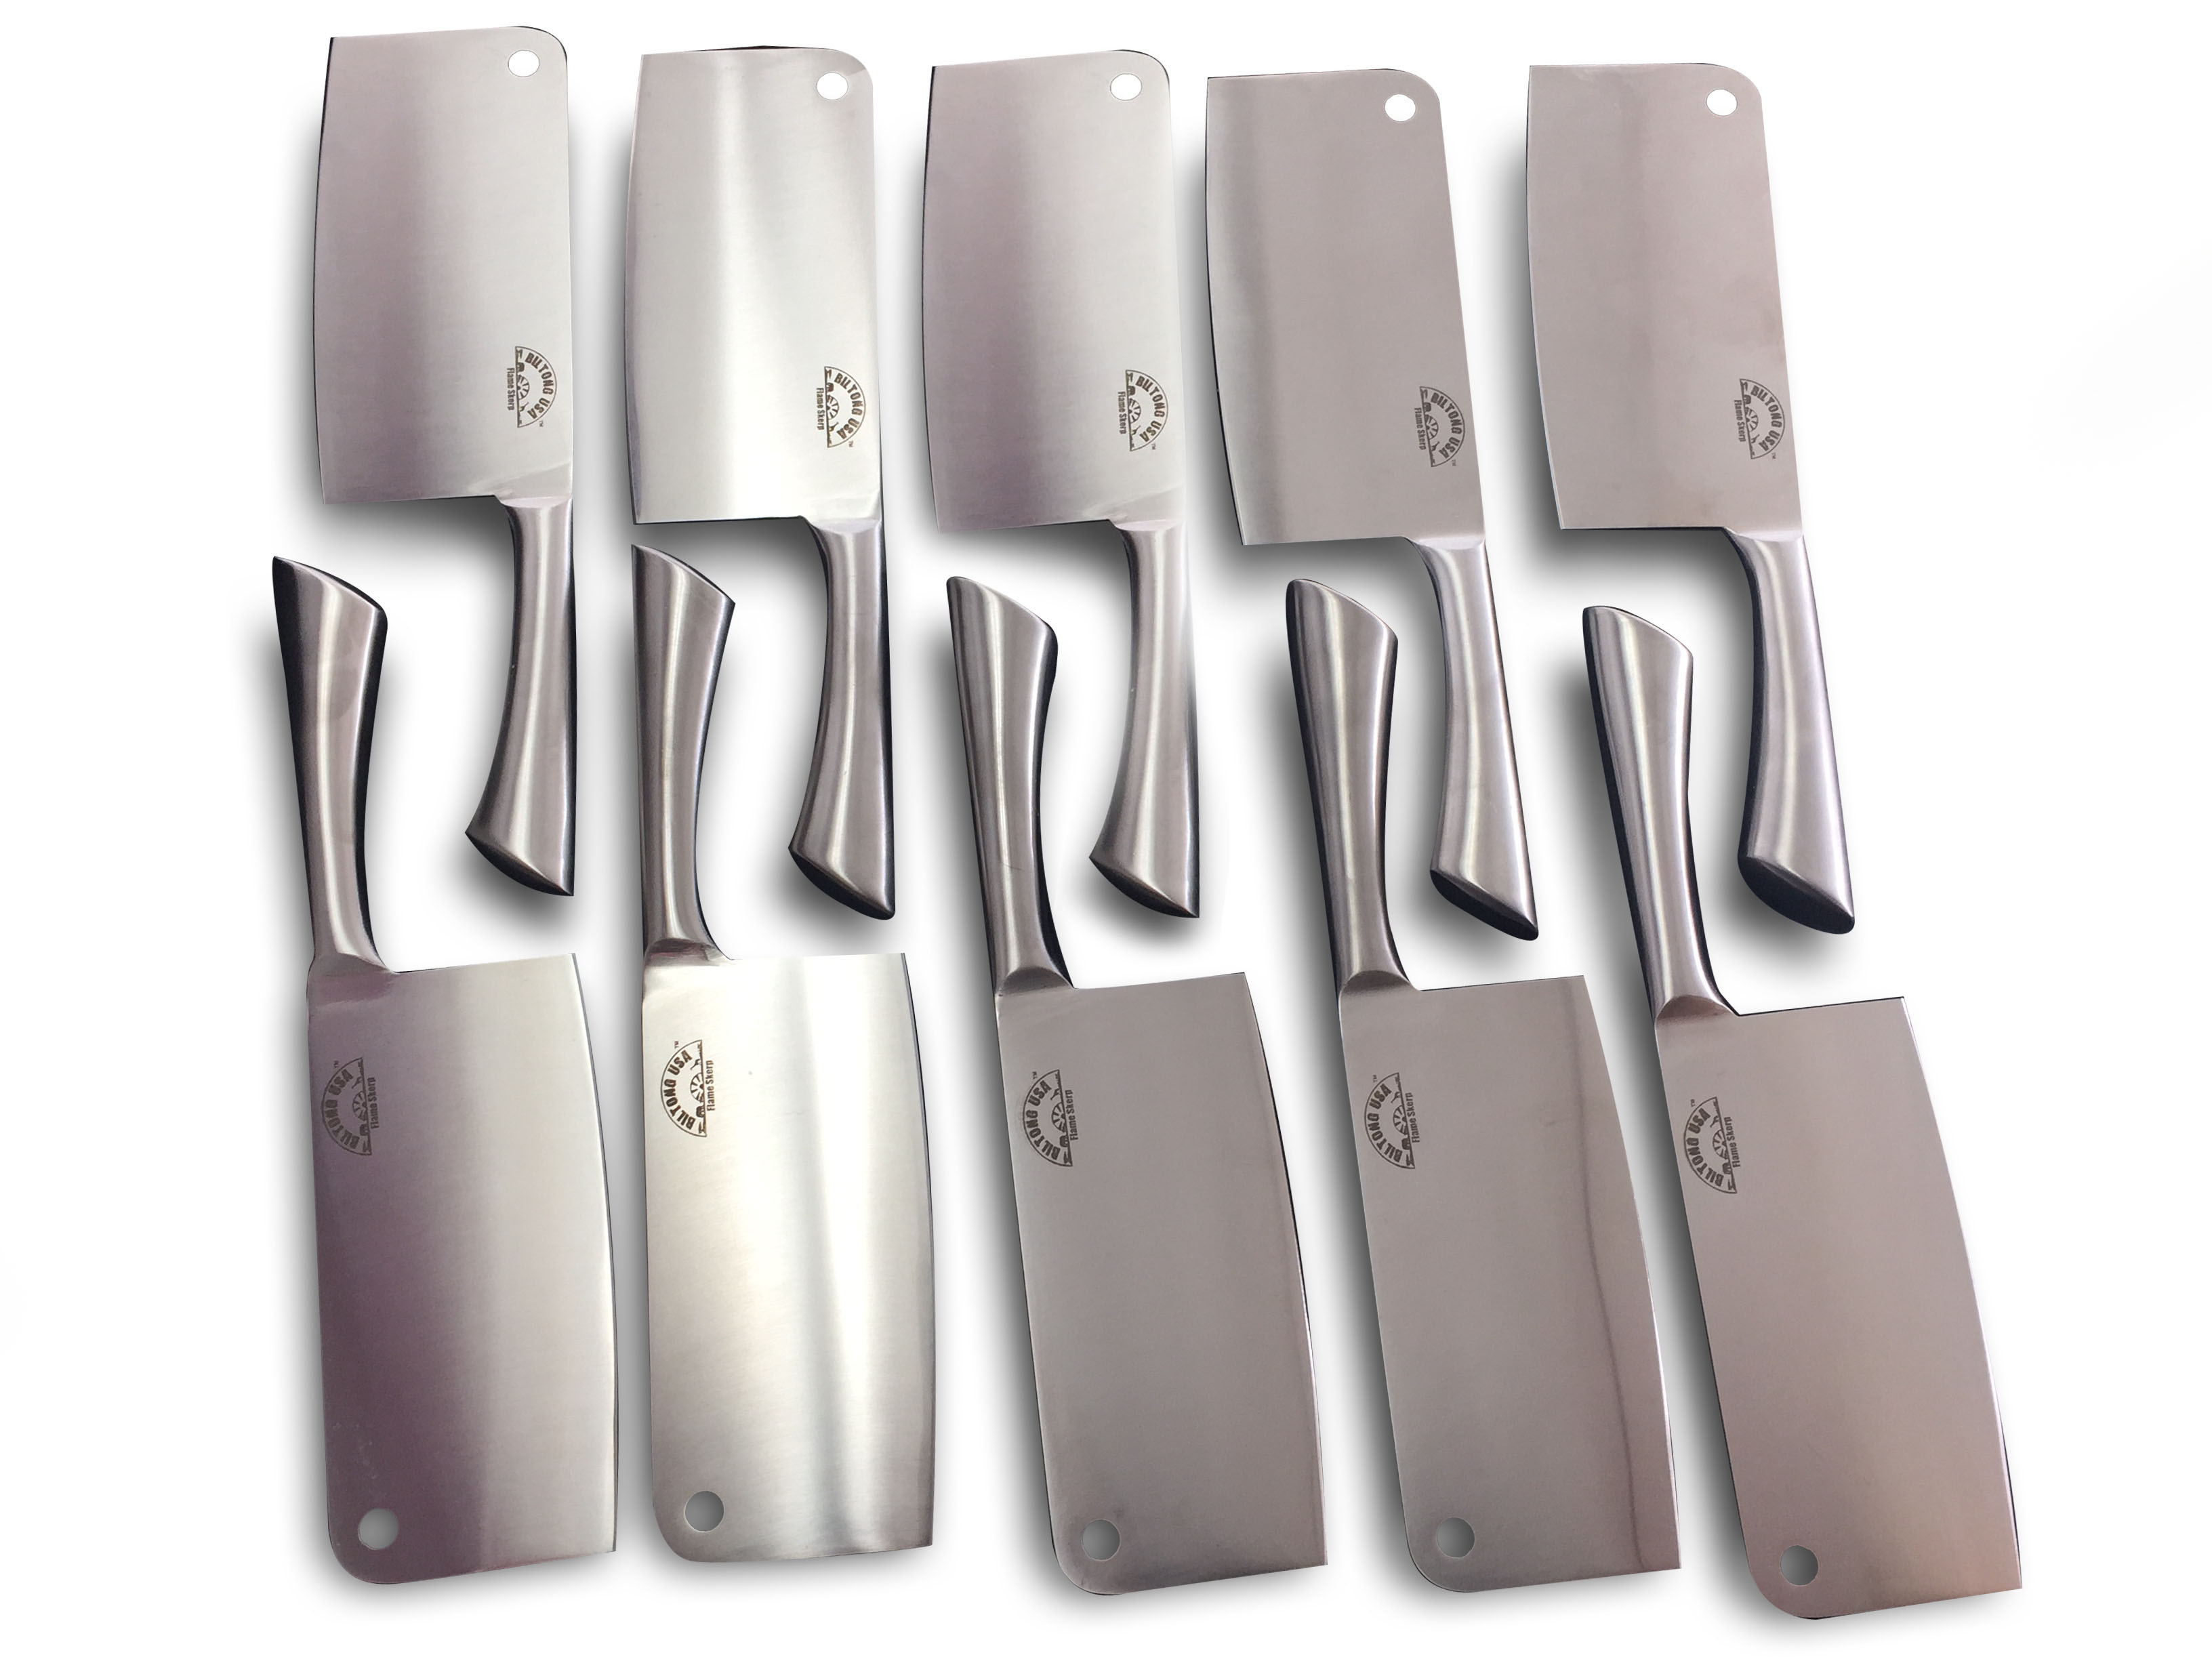 7 inch Chef Butcher Kitchen, Stainless Steel, Cleaver, 10 Pack by